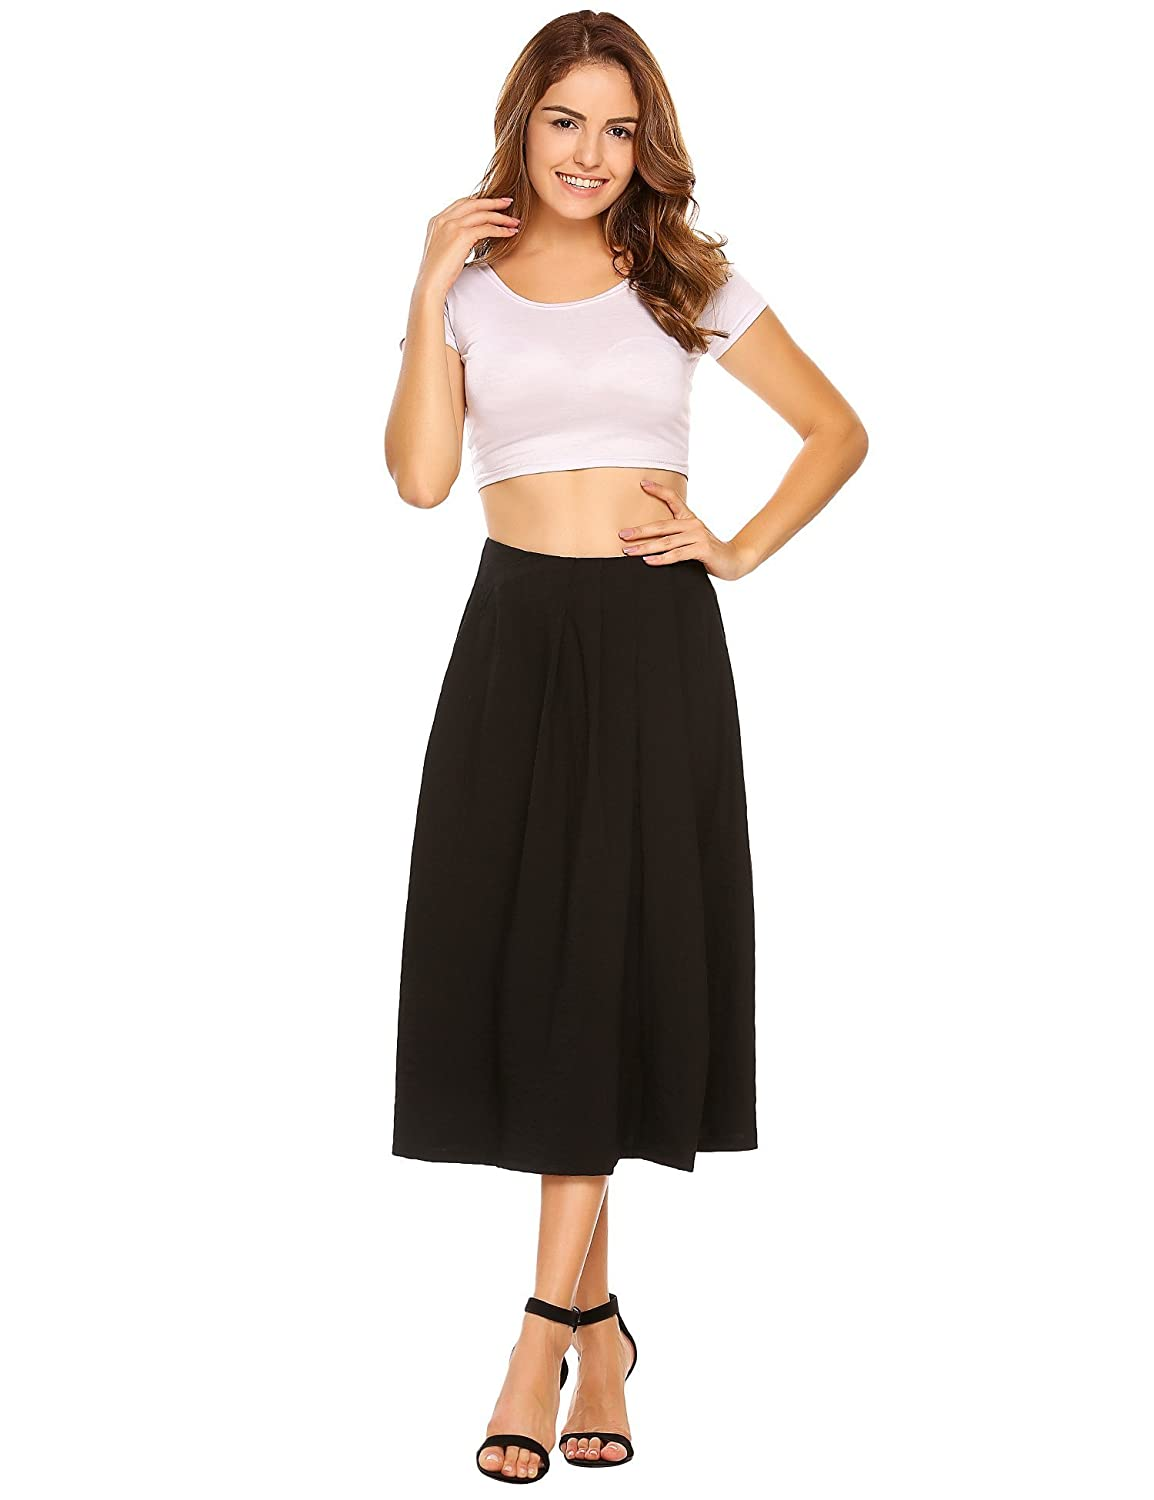 Black Next Skirt Pleated Size 10 Reputation First Skirts Women's Clothing